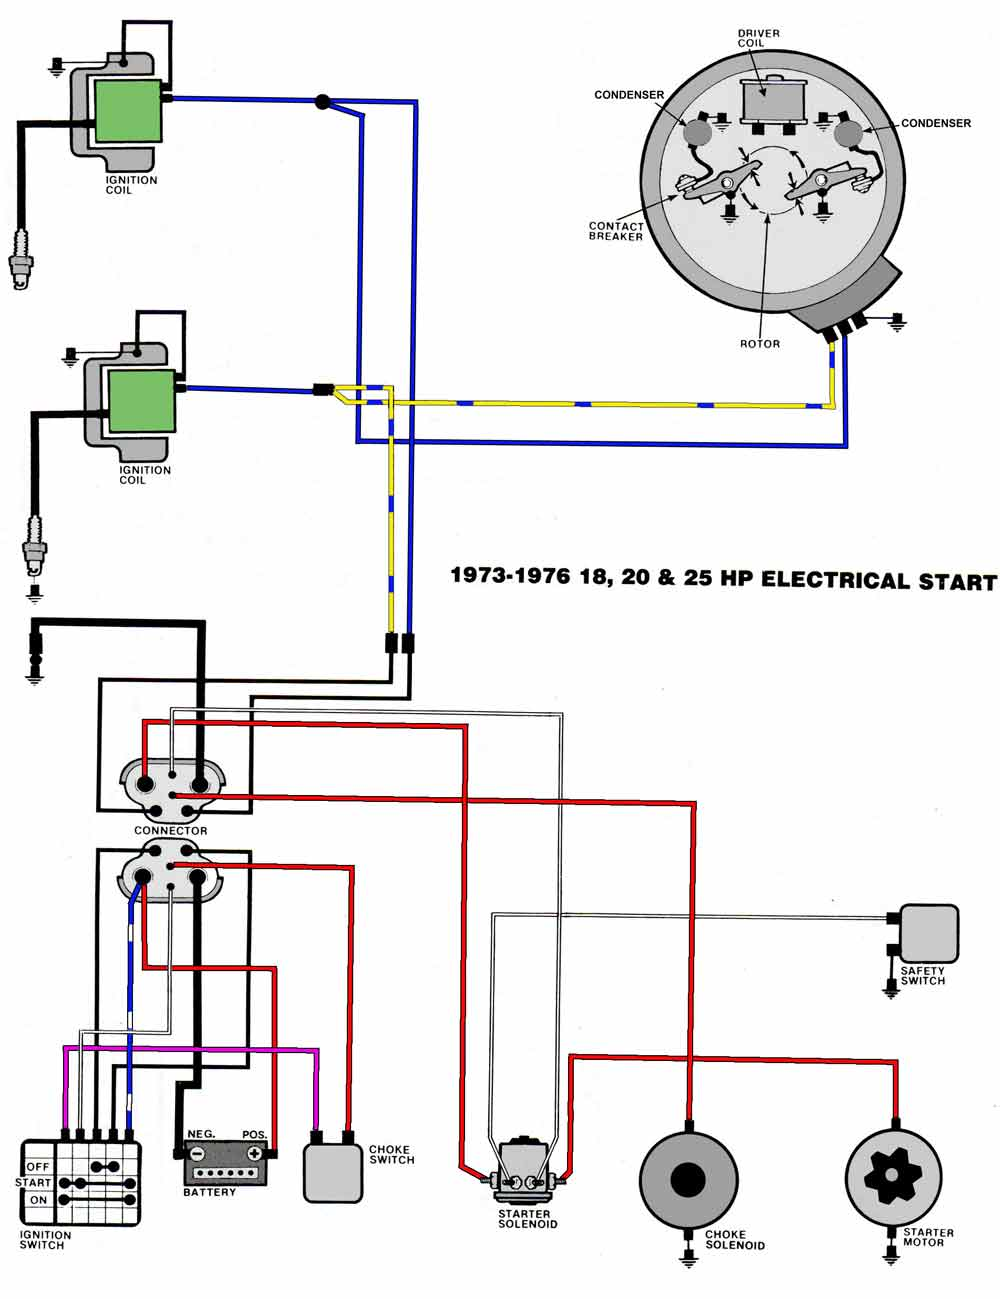 hight resolution of johnson 25 hp wiring diagram data wiring diagramjohnson 25 hp wiring diagram